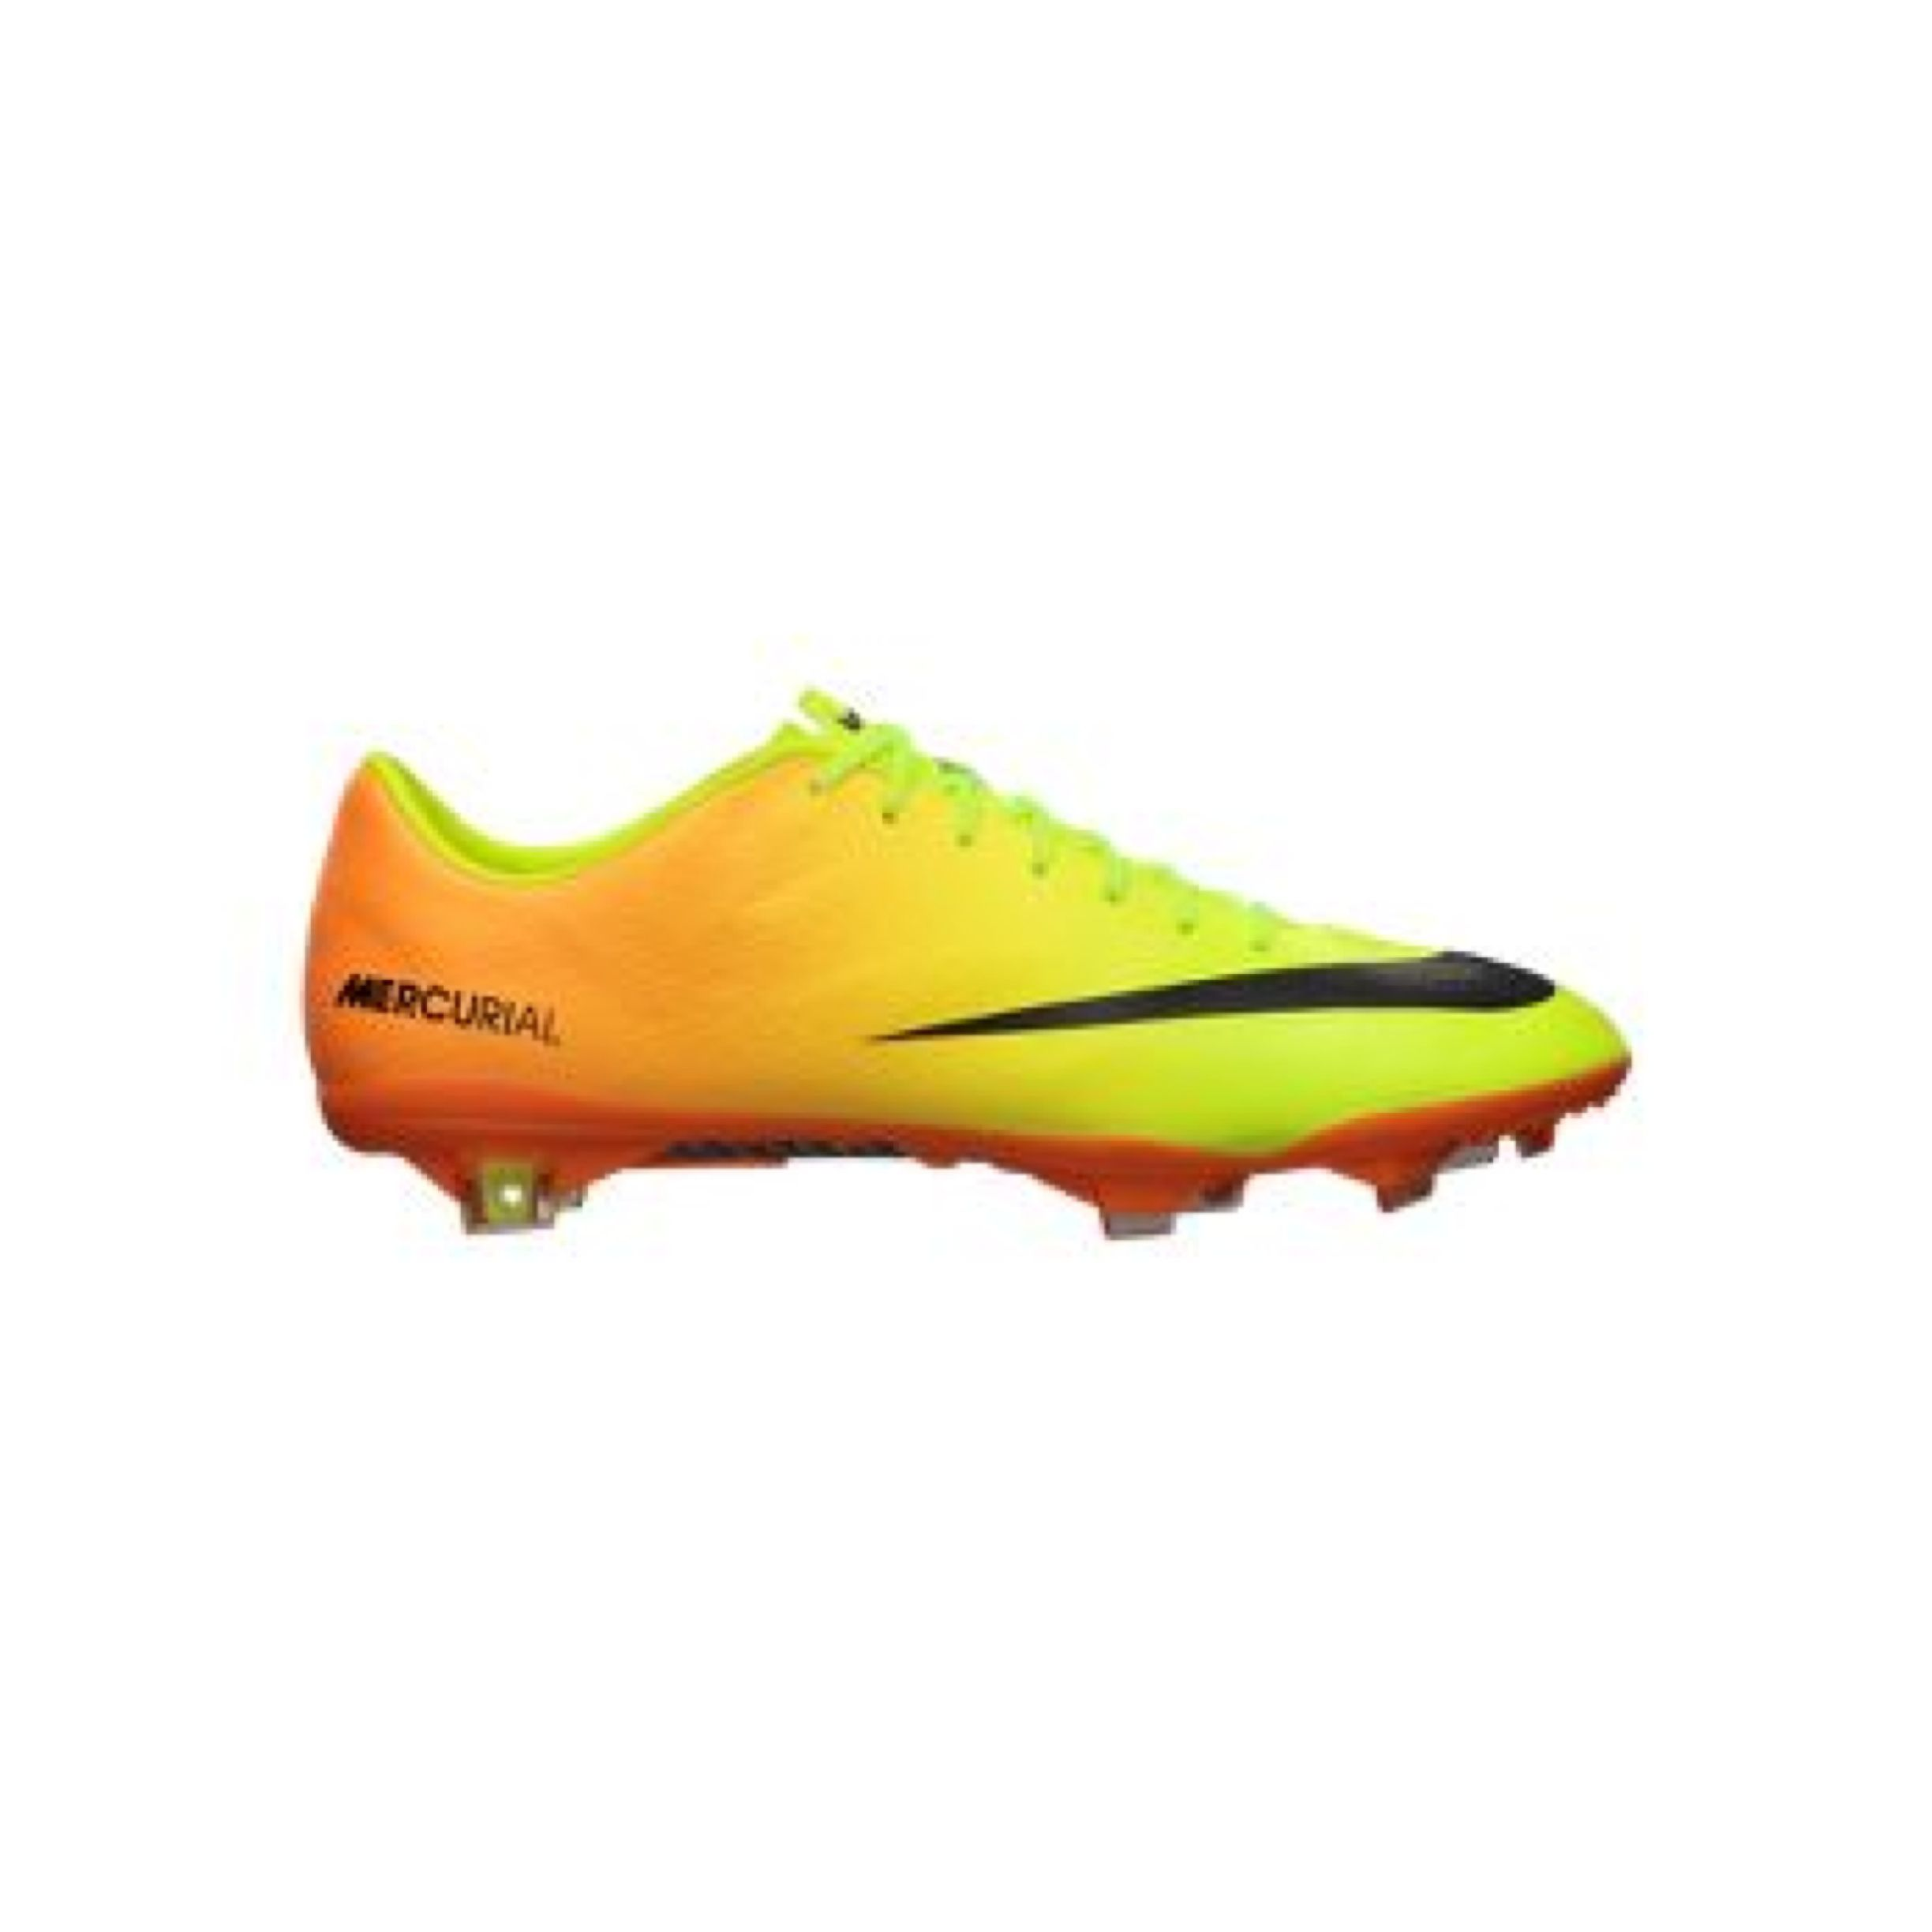 Soccer shoes, Nike shoes